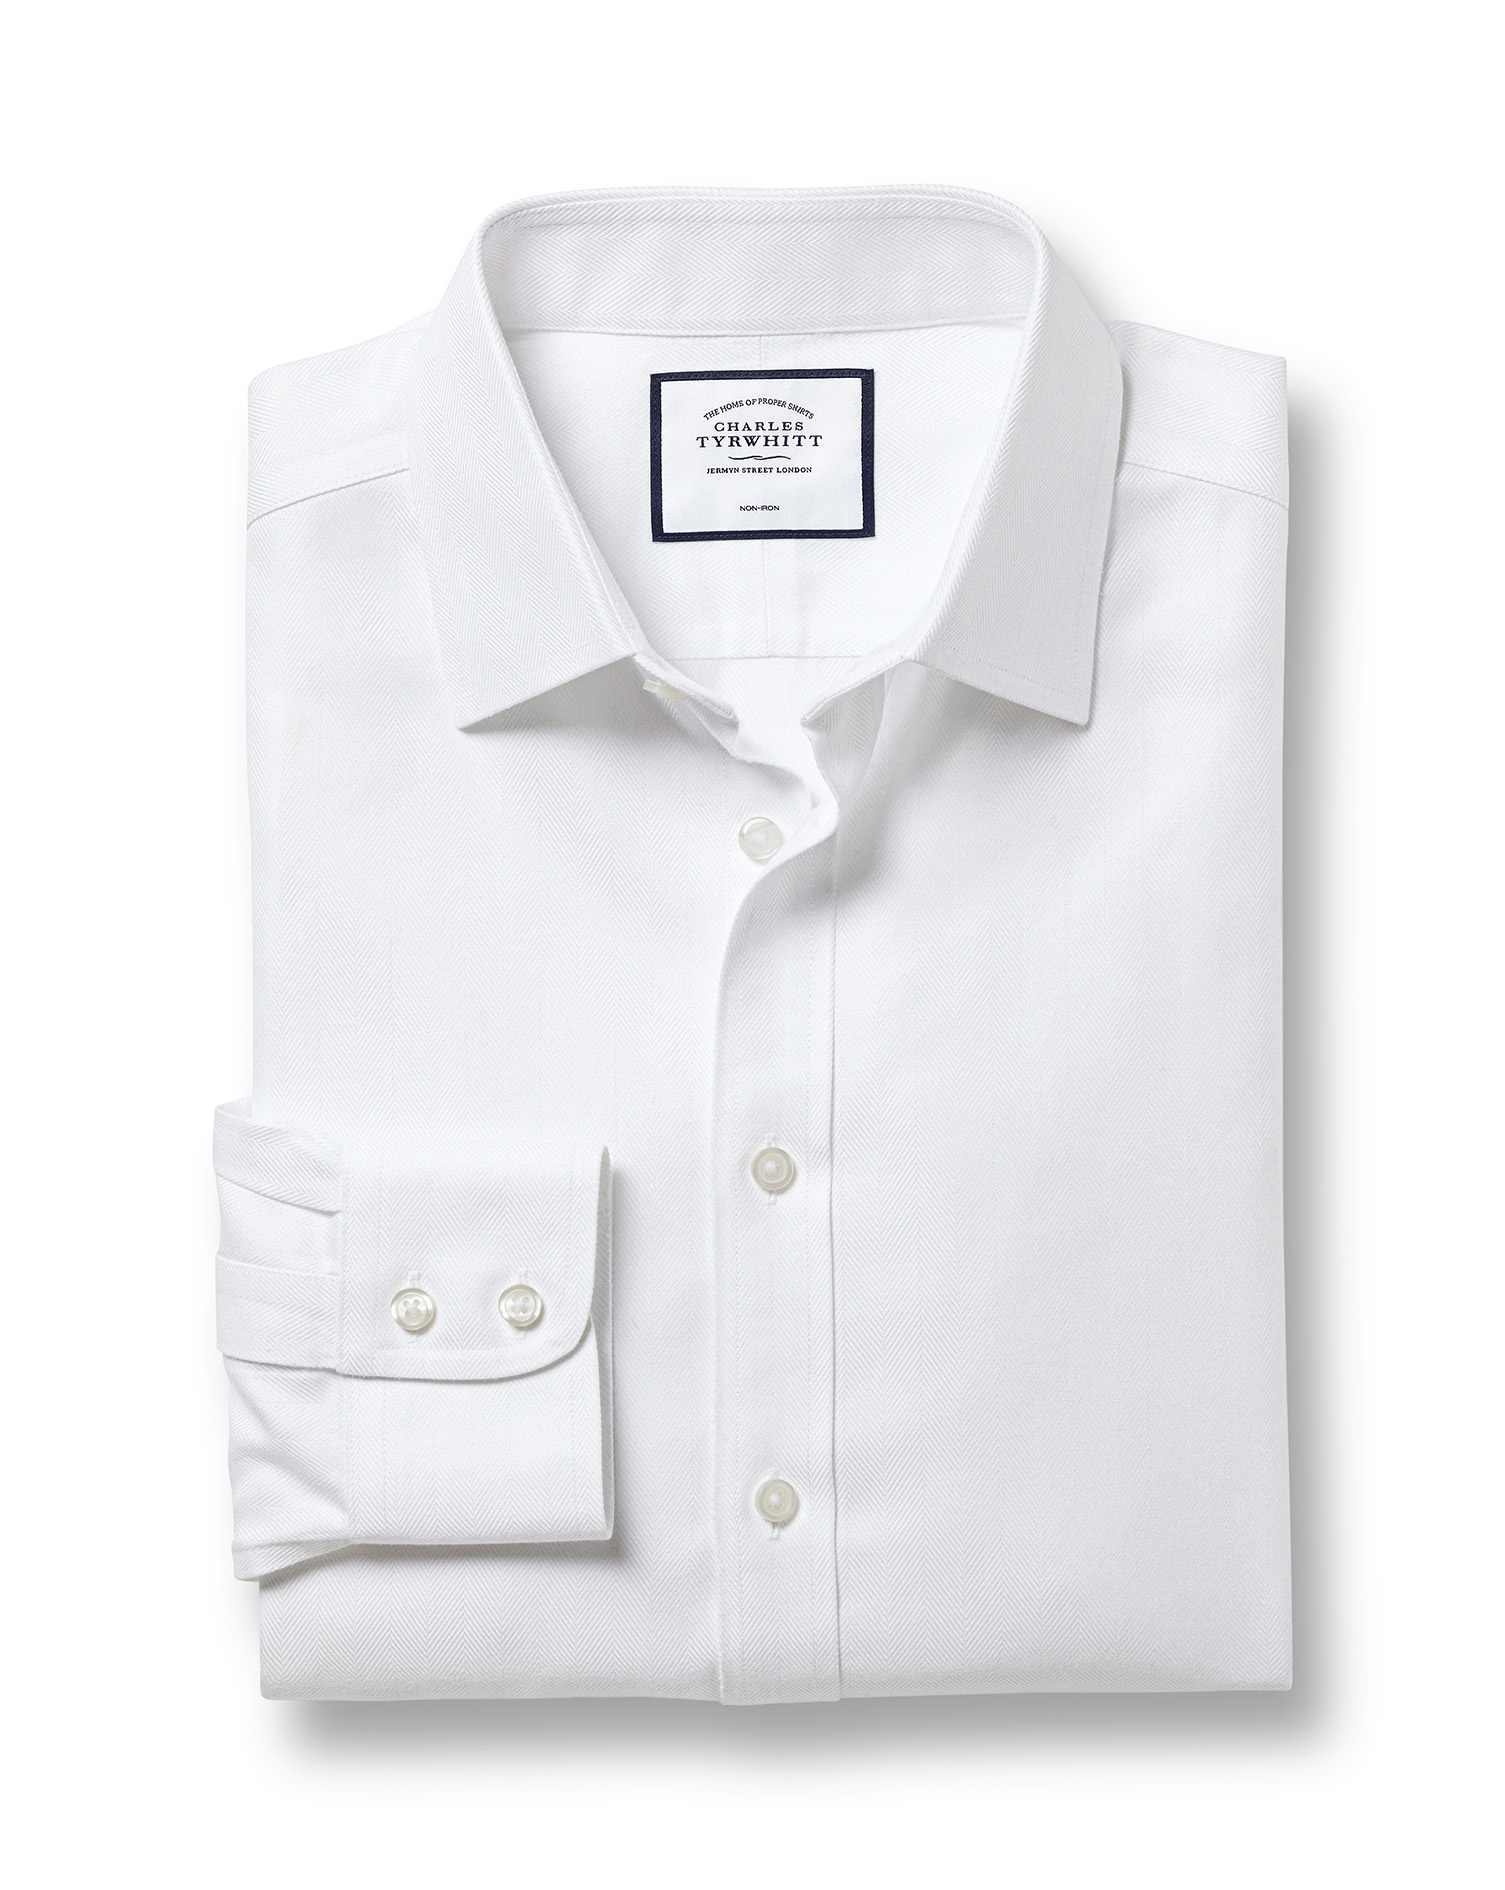 Classic Fit Non-Iron White Herringbone Cotton Formal Shirt Single Cuff Size 17/35 by Charles Tyrwhit